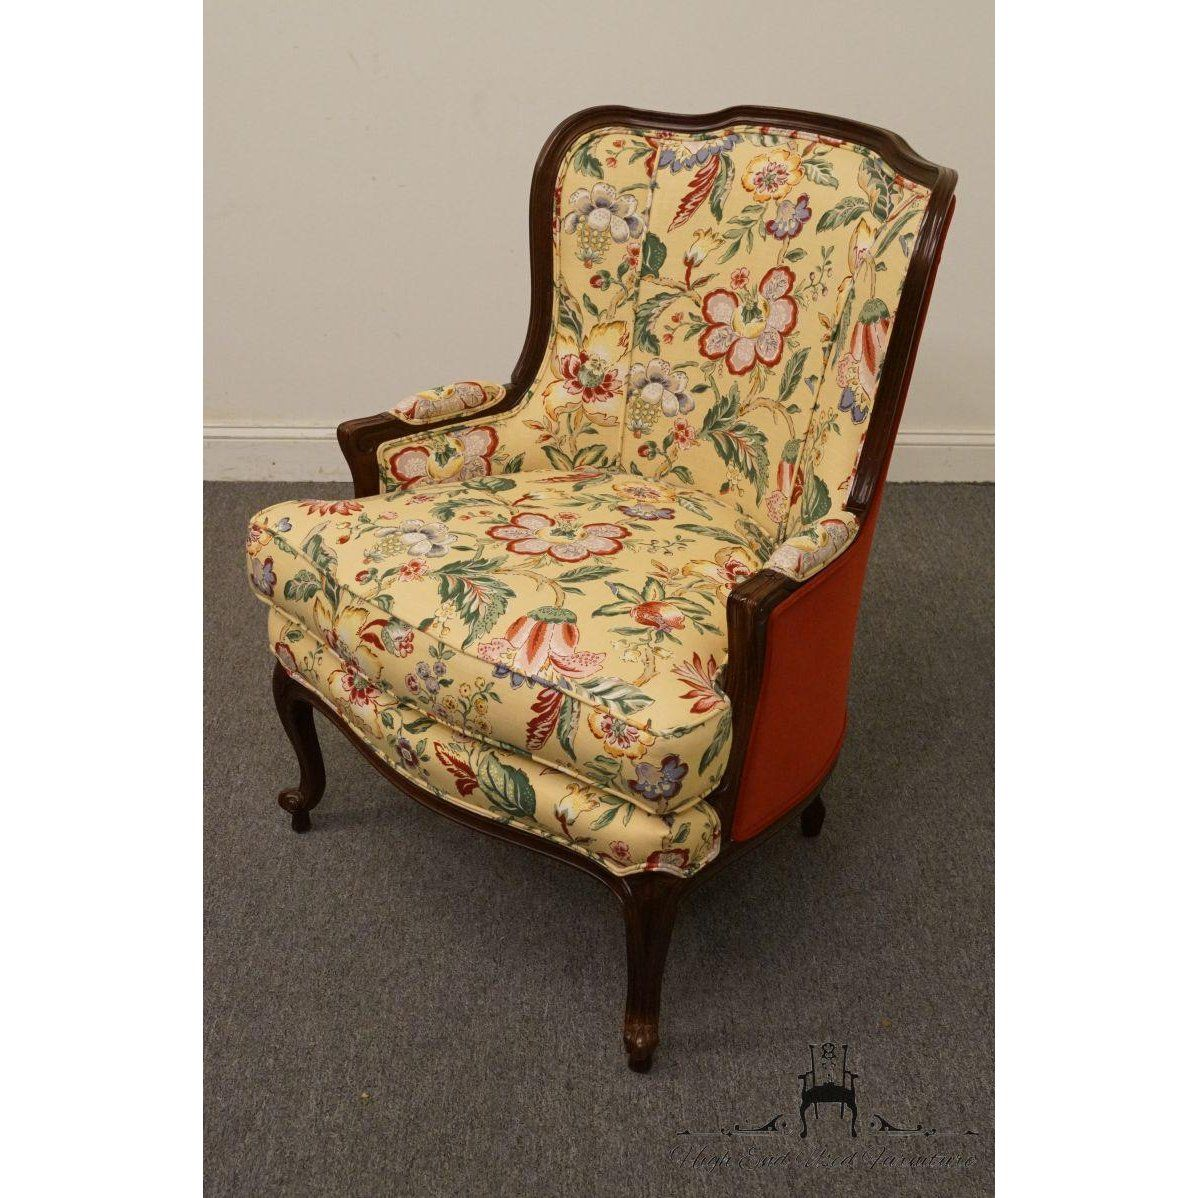 Ethan Allen 20th Century French Ethan Allen Wingback Accent Chair